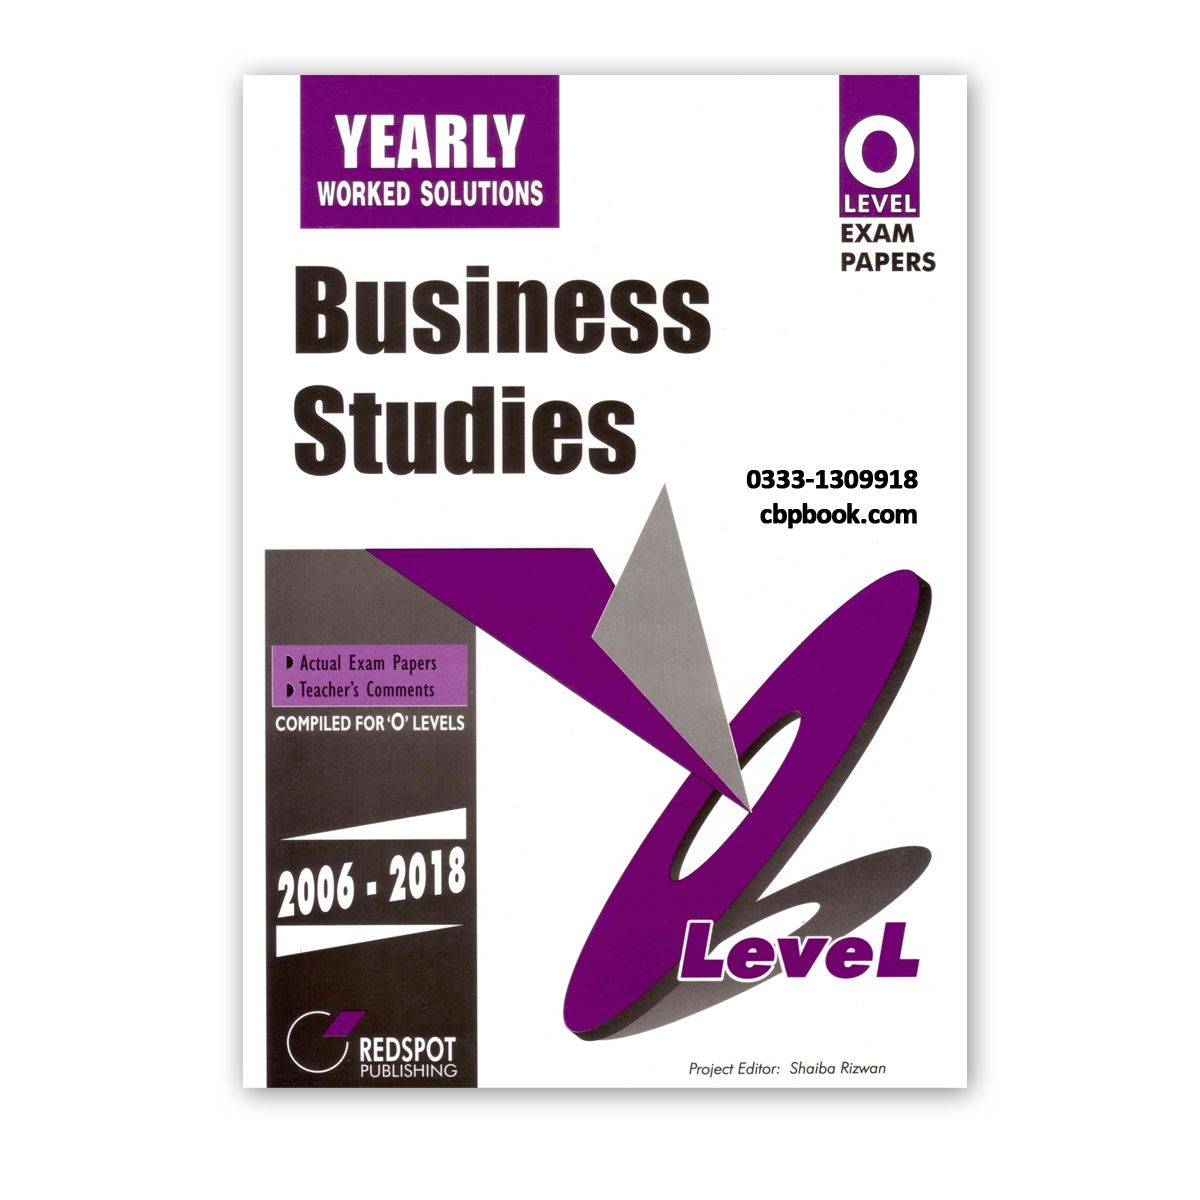 O Level BUSINESS STUDIES Yearly Solution 2019 Edition